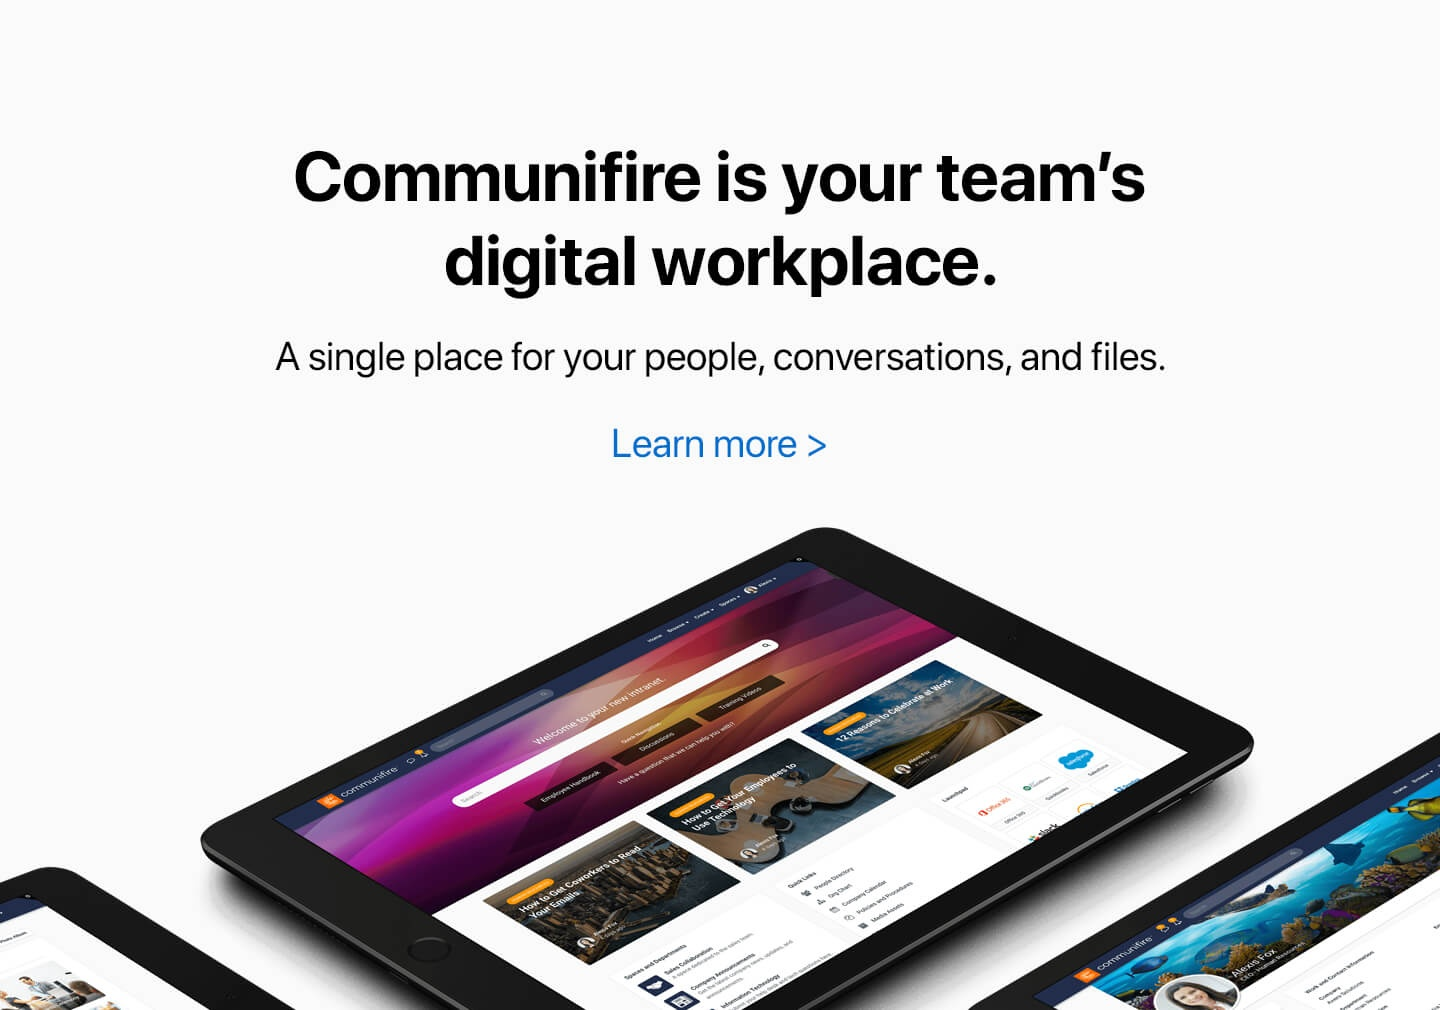 Communifire is your team's digital workplace.